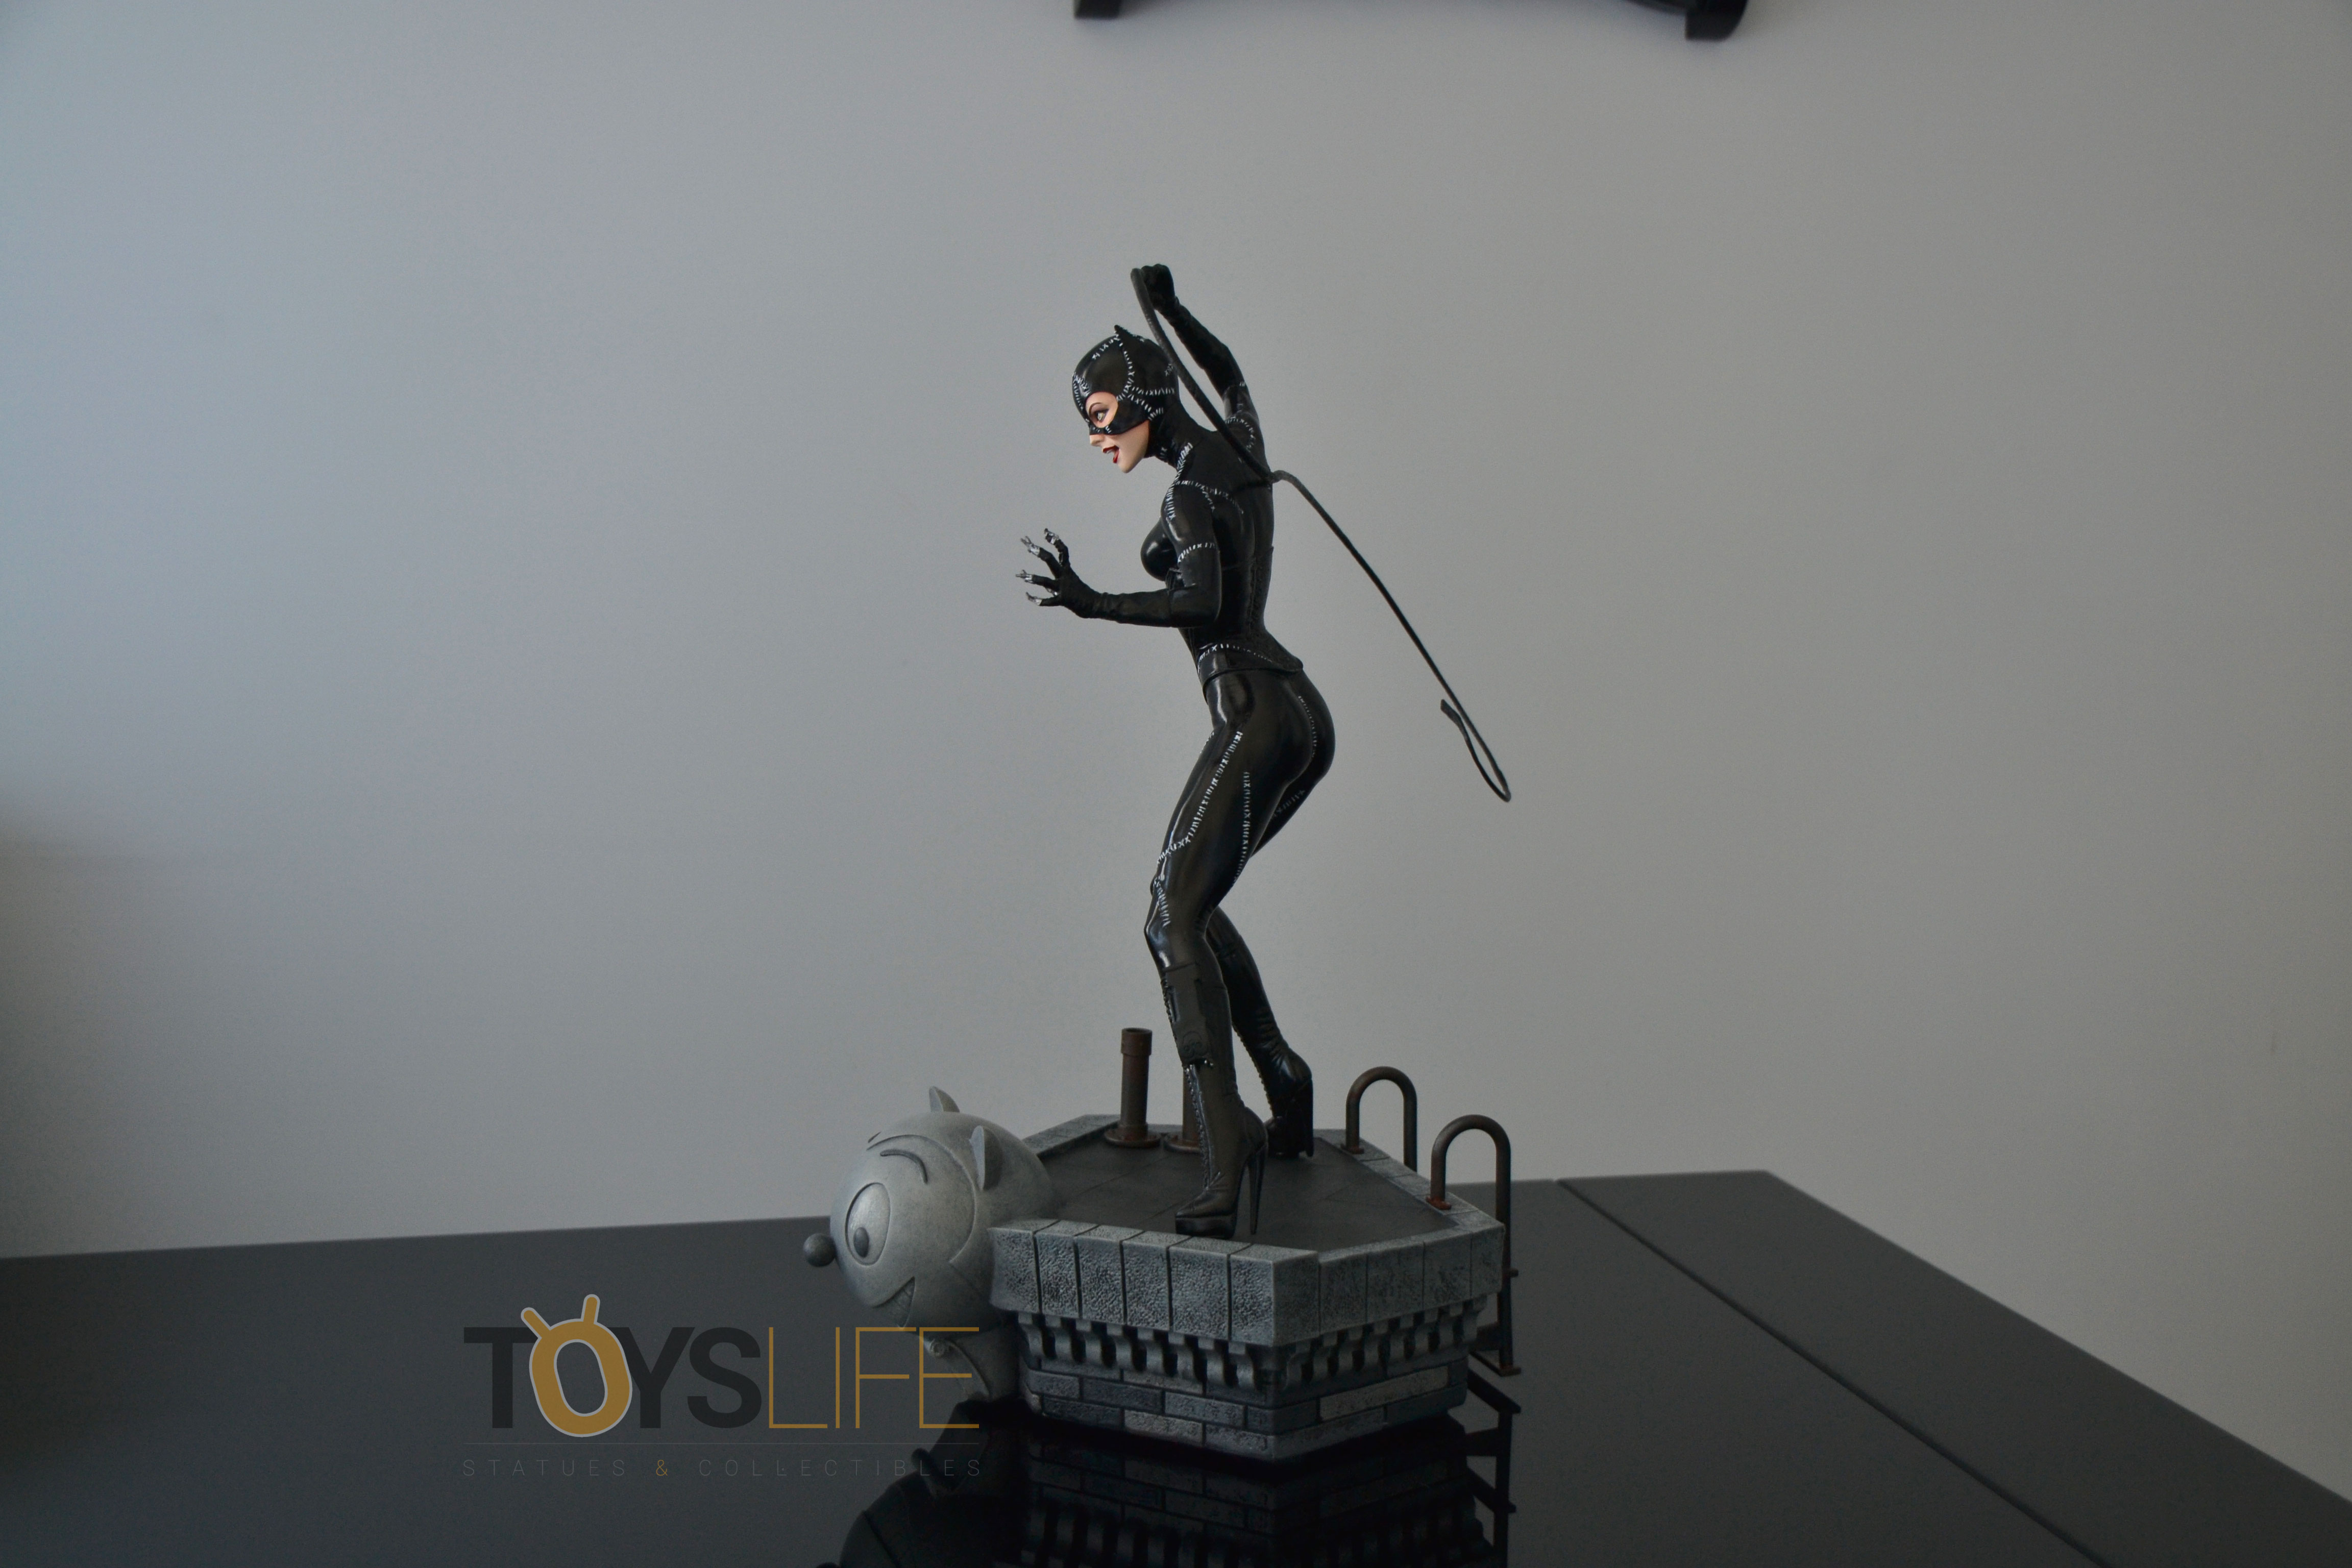 tweeterhead-catwoman-michelle-pfeiffer-maquette-toyslife-review-29